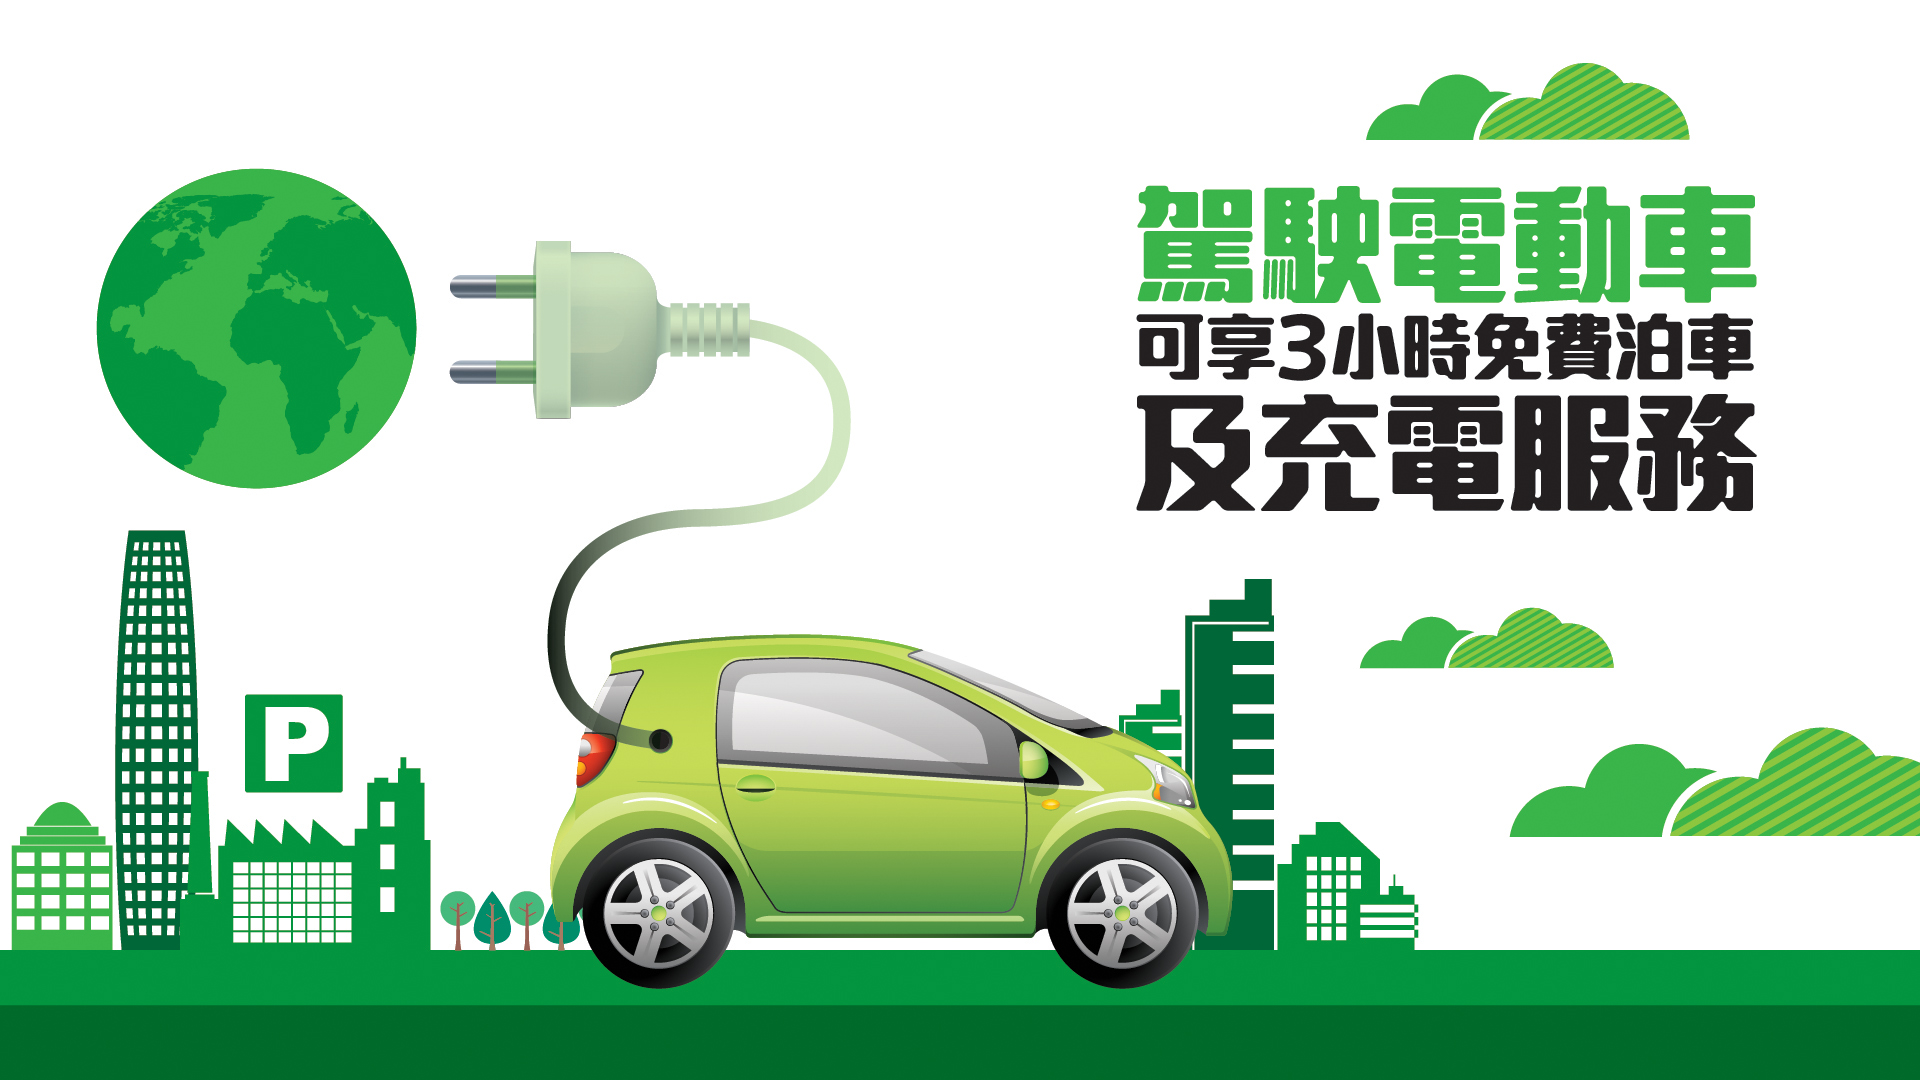 Electric Vehicle 3 hours Parking Privilege & Charging Service